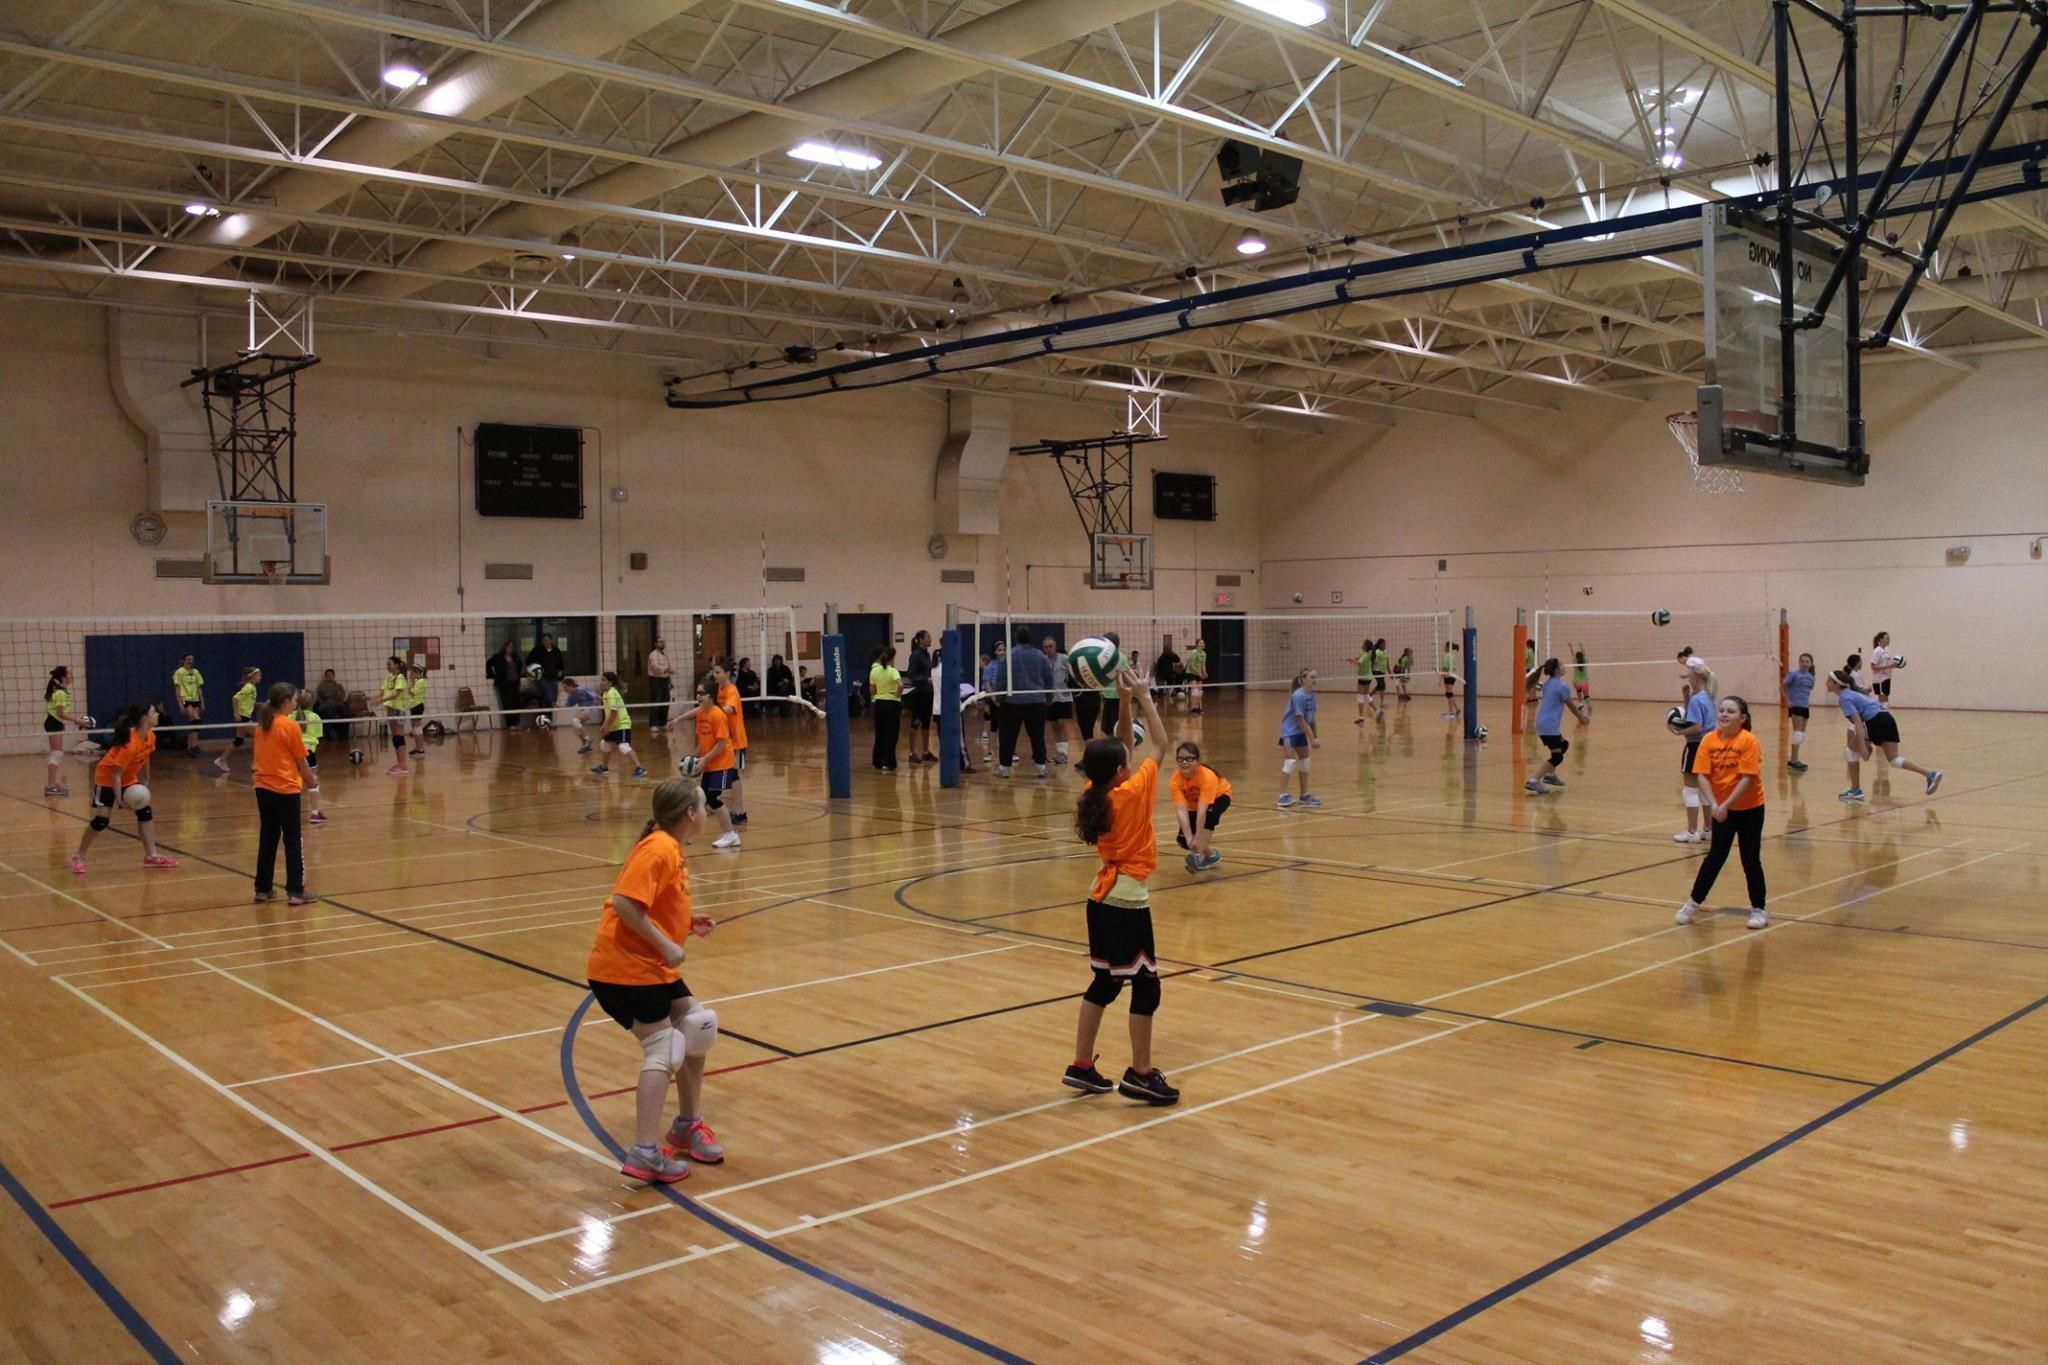 Youth Volleyball Clinics Leagues And Open Volleyball Offered At The Recreation Center At Hillside Northville Youth Volleyball Volleyball Parks And Recreation